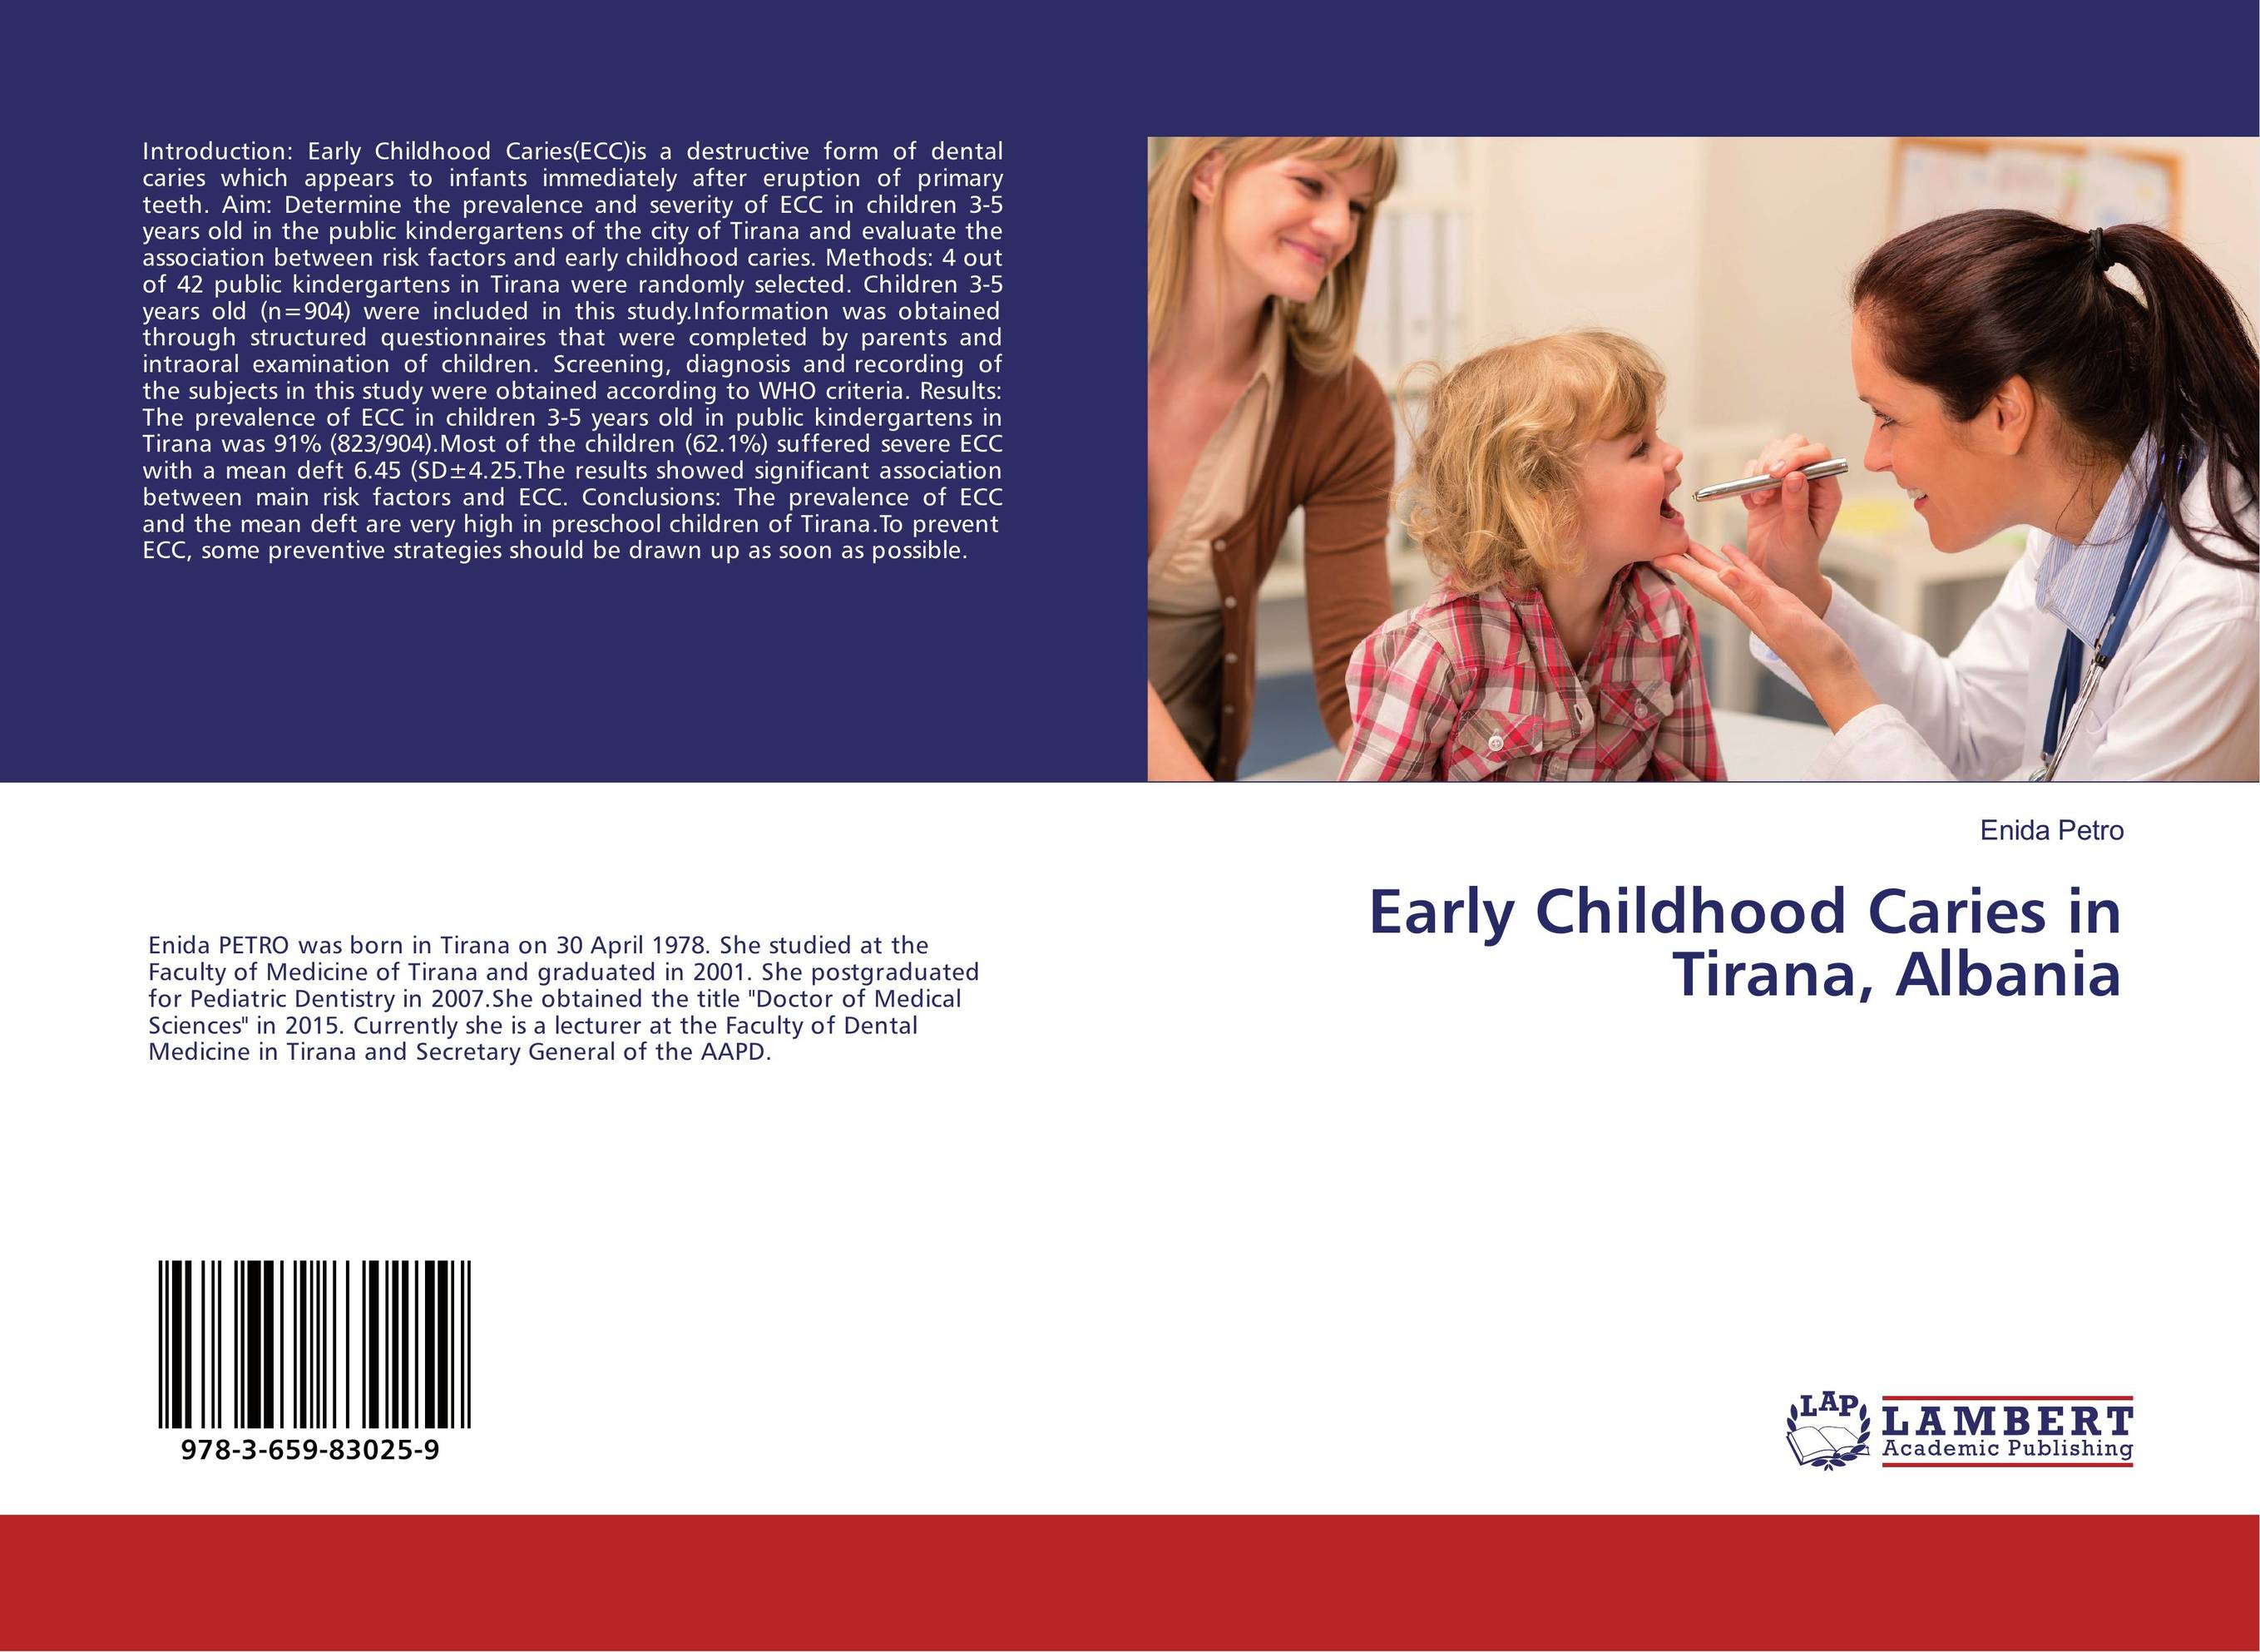 Early Childhood Caries in Tirana, Albania prevalence of intestinal parasitosis among children